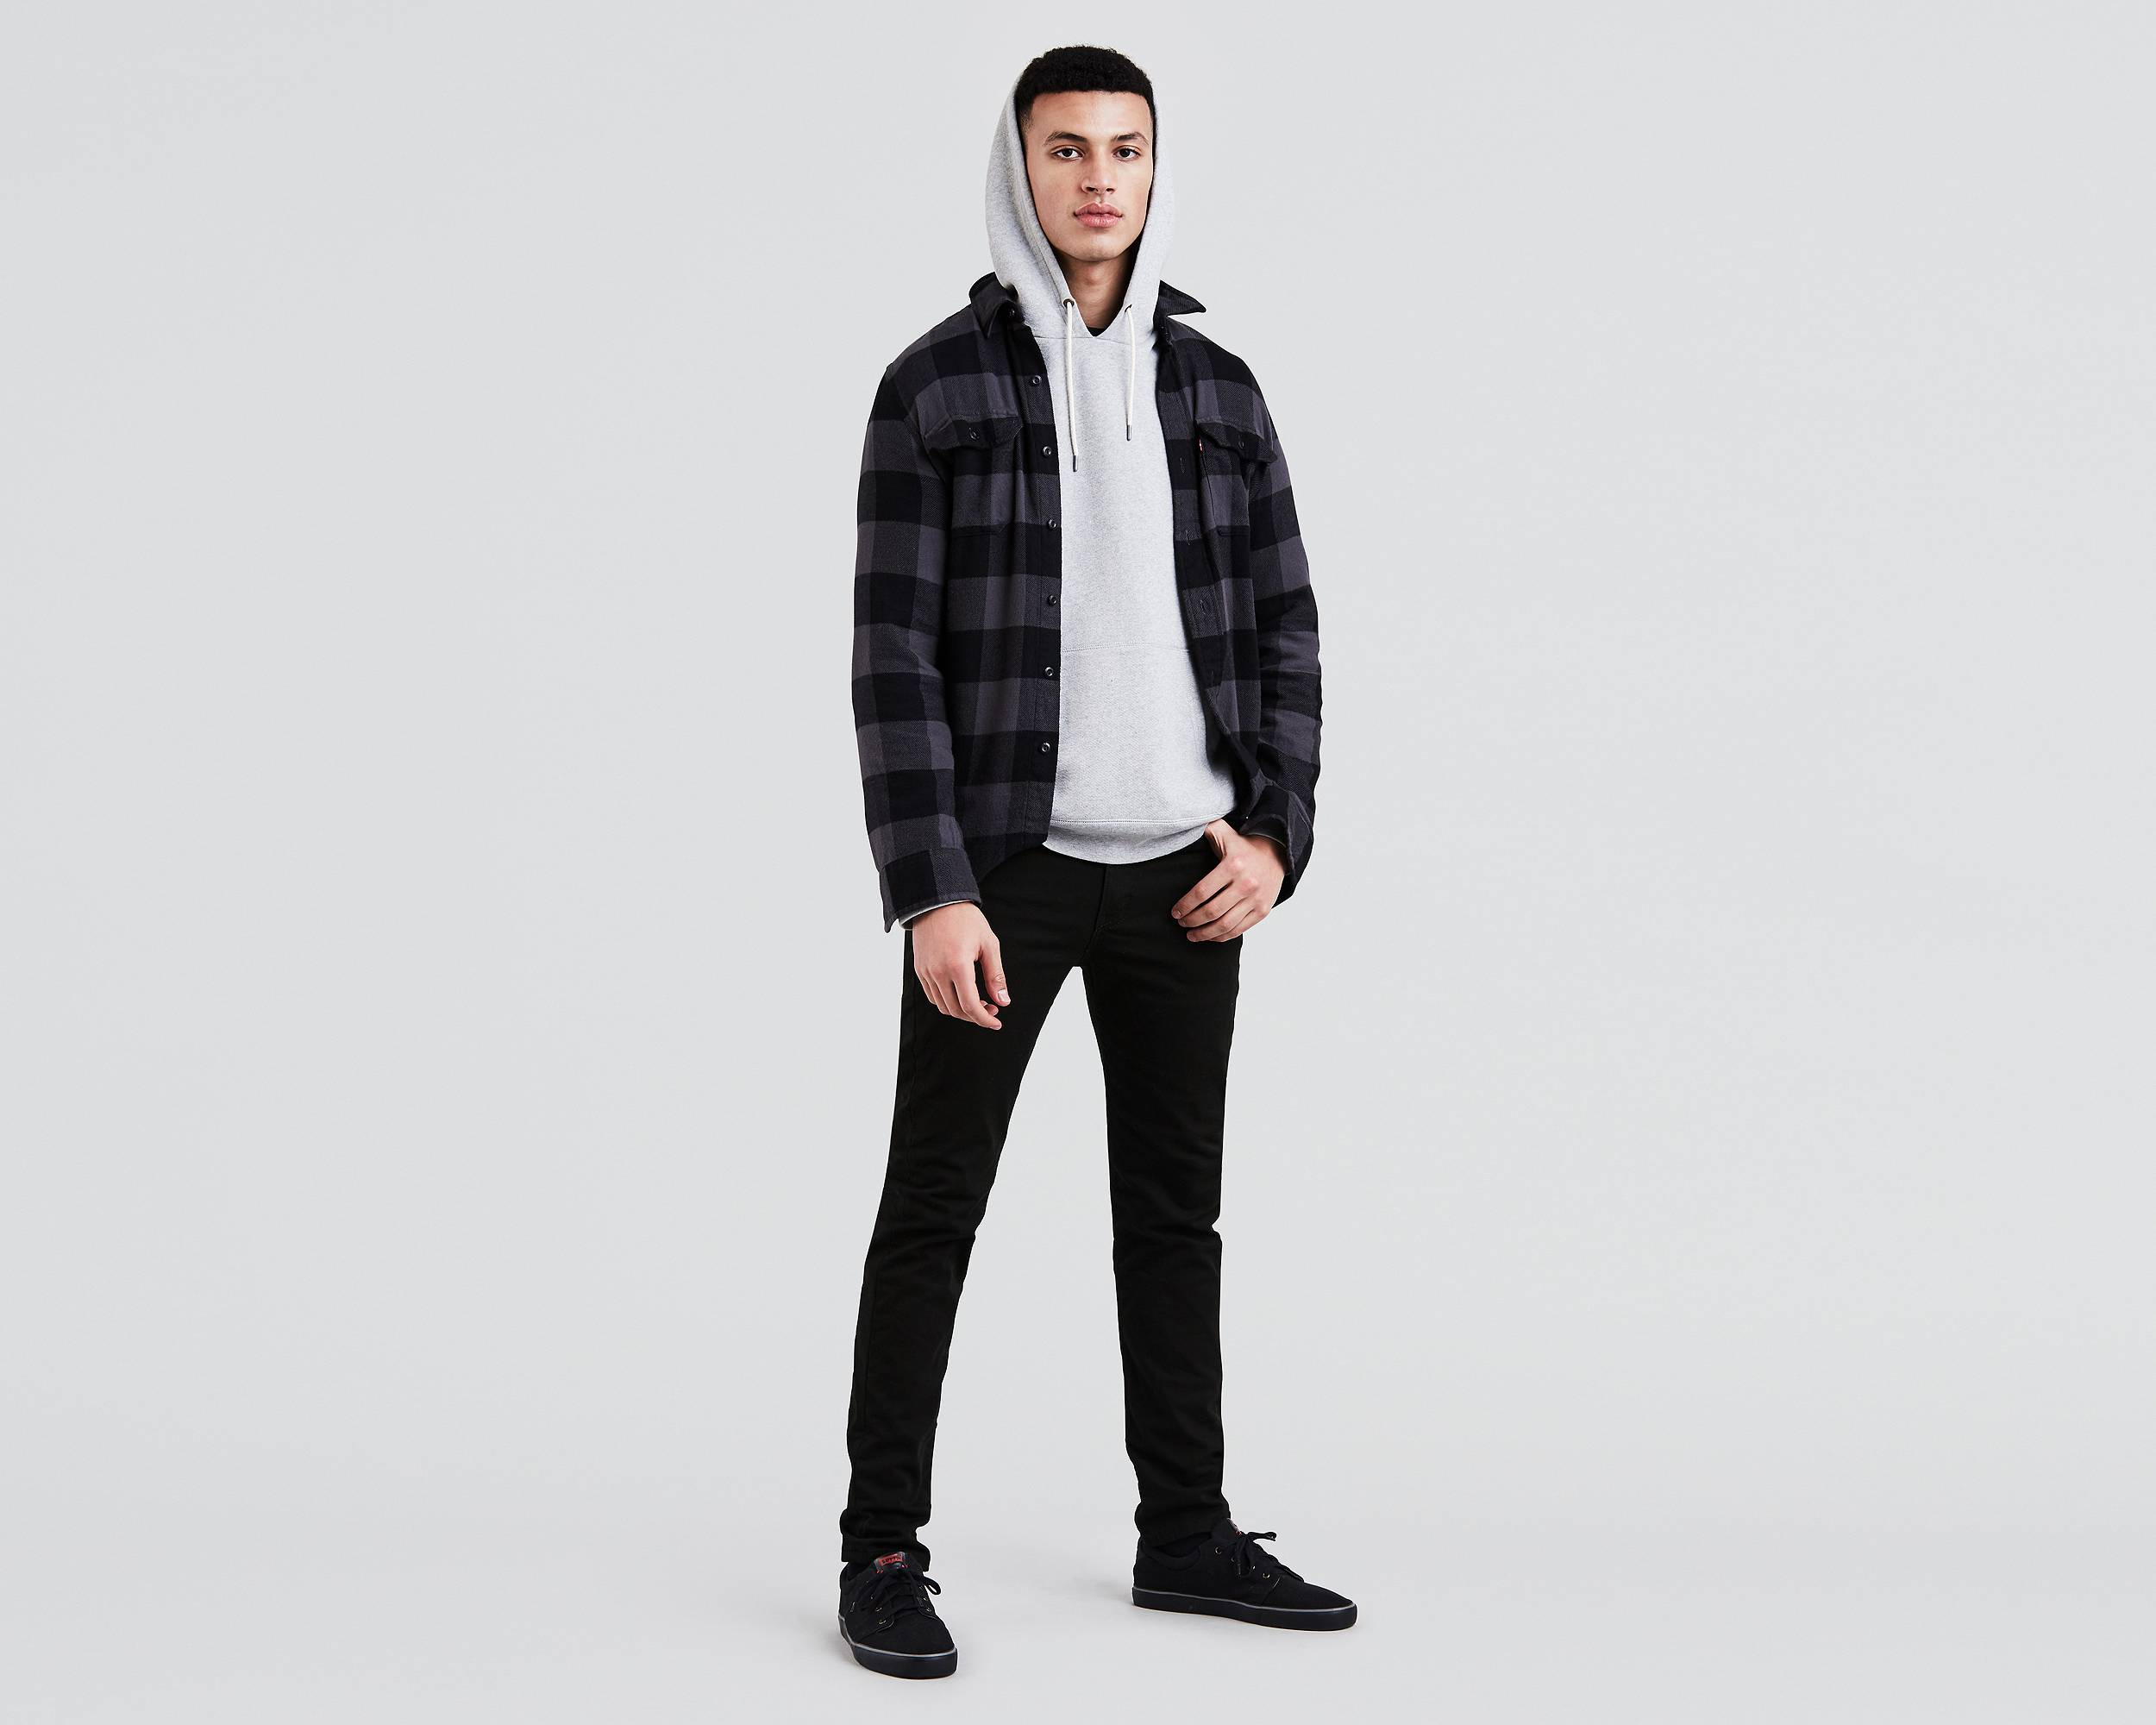 510™ Skinny Fit Stretch Jeans | Jet |Levi's® United States (US)